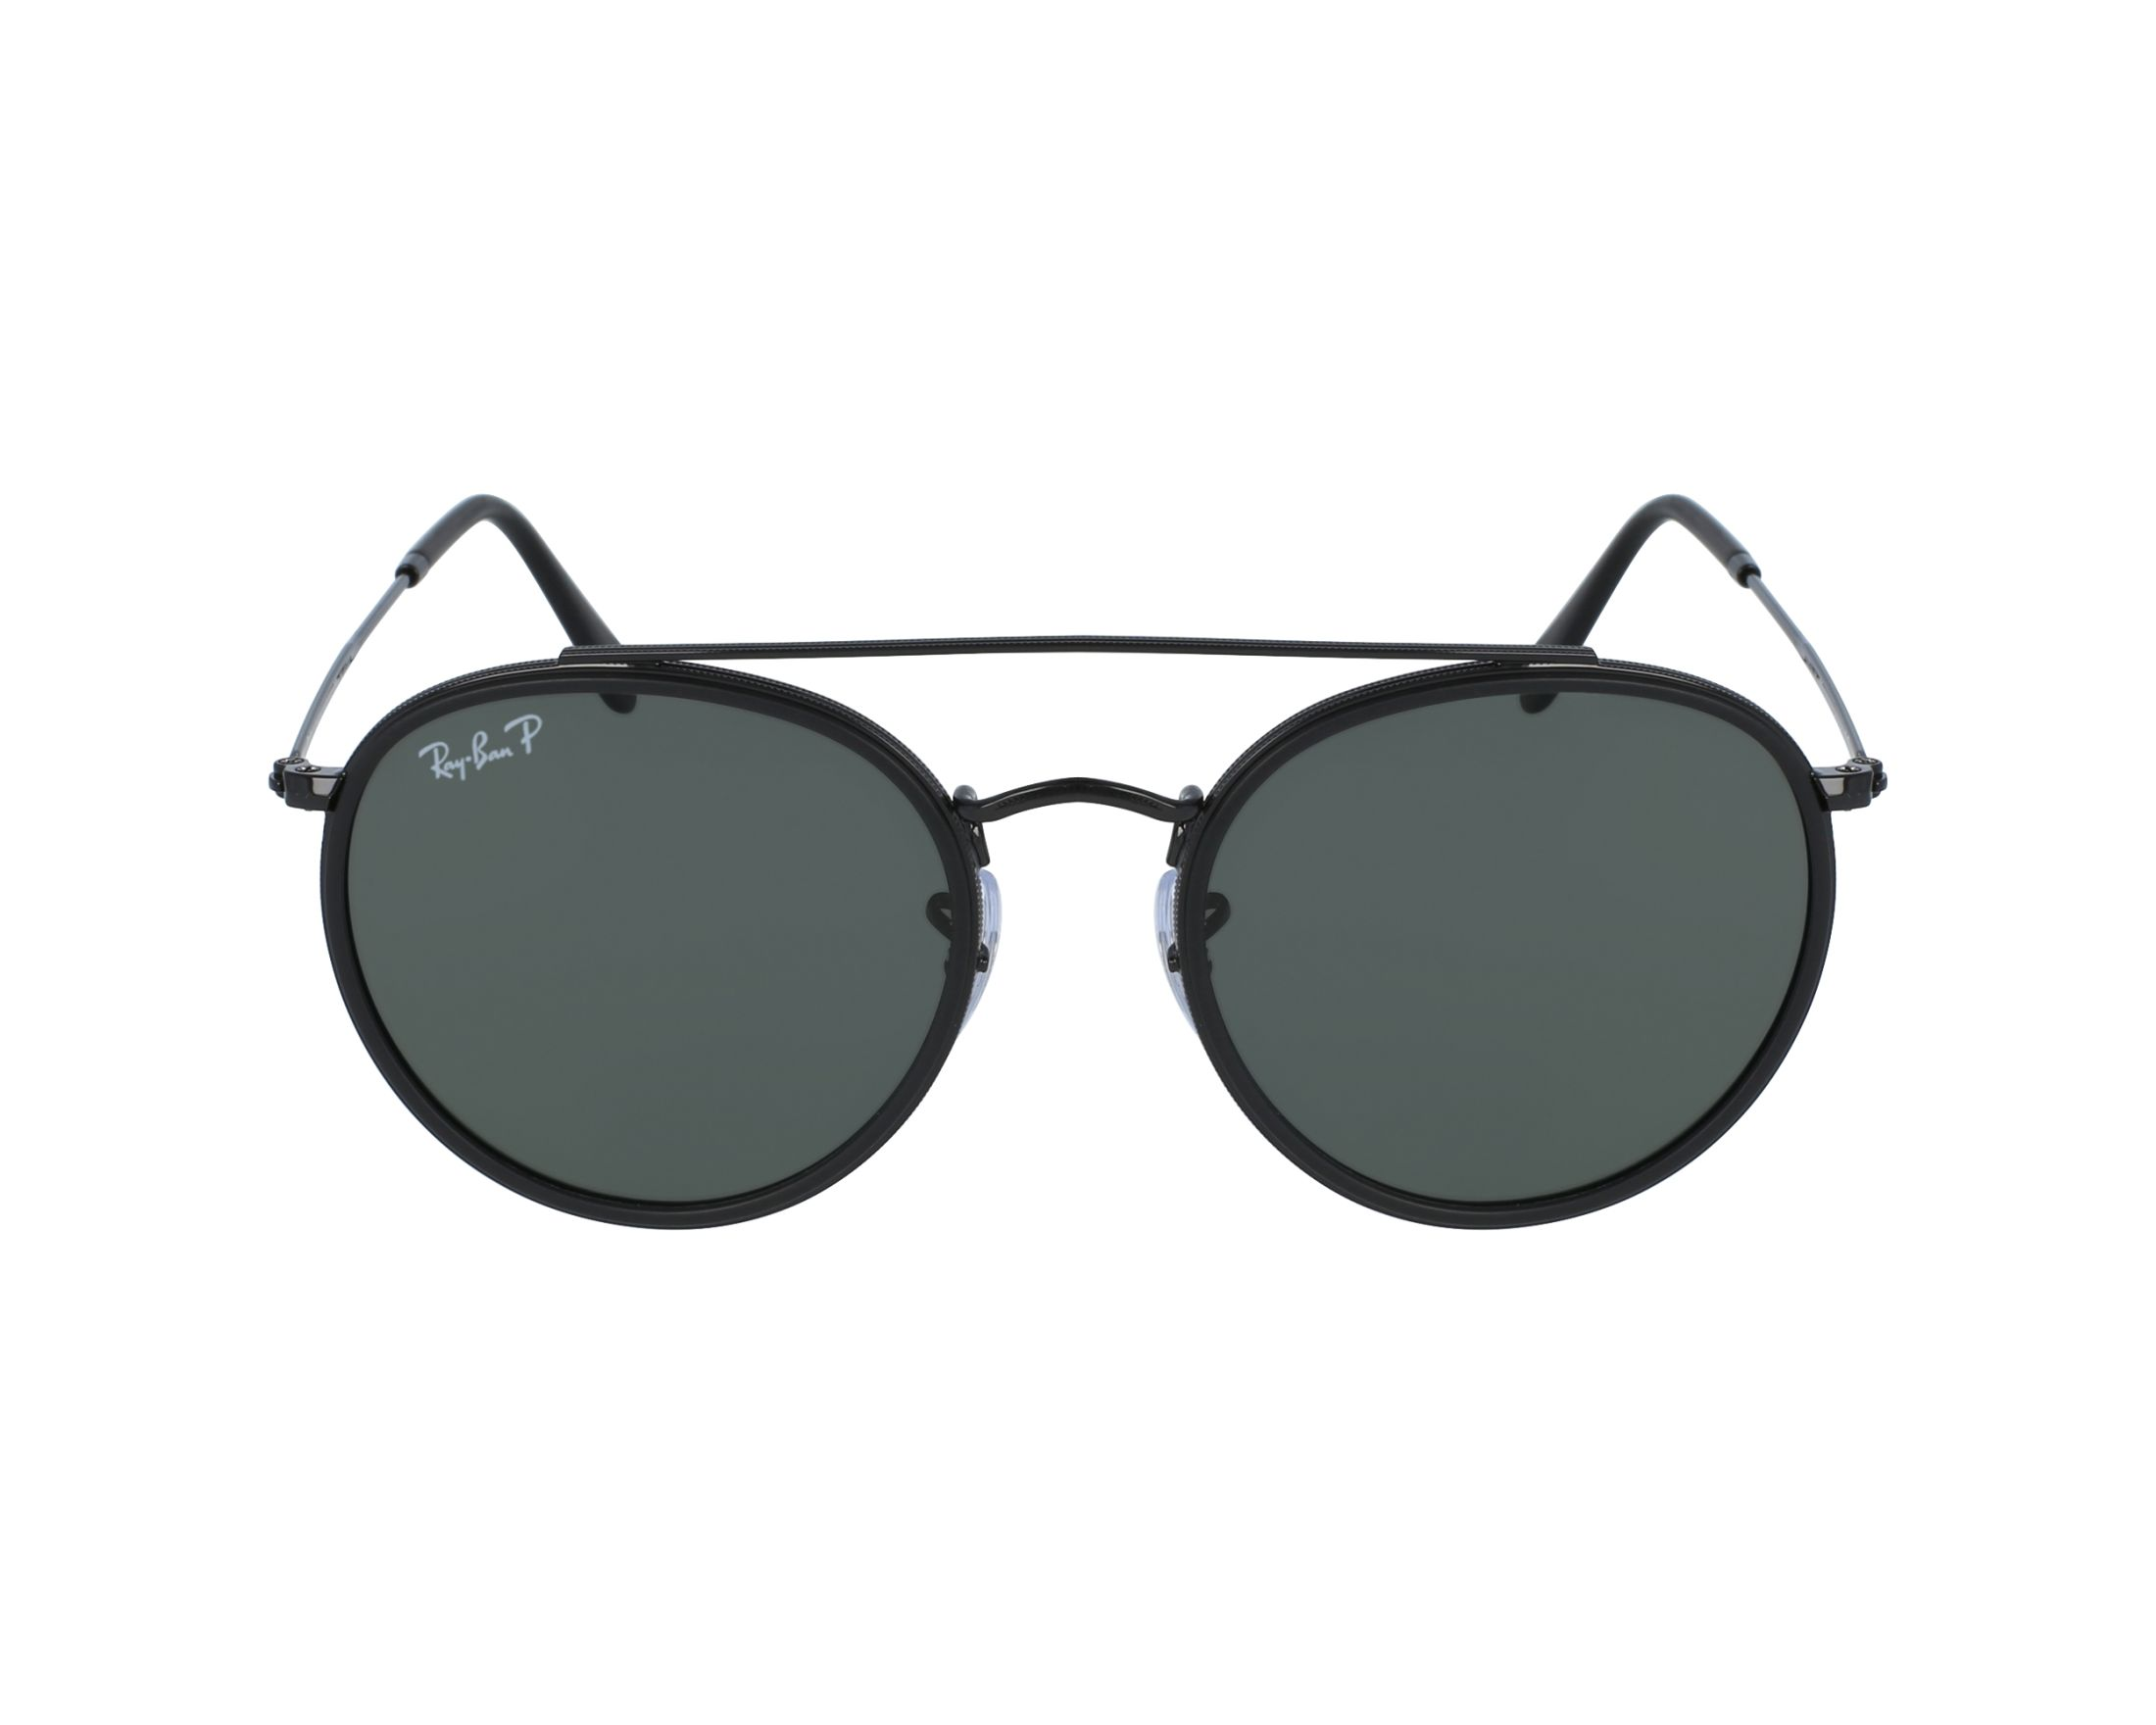 ray ban sunglasses rb 3647 n 002 58 buy now and save 9 visionet. Black Bedroom Furniture Sets. Home Design Ideas